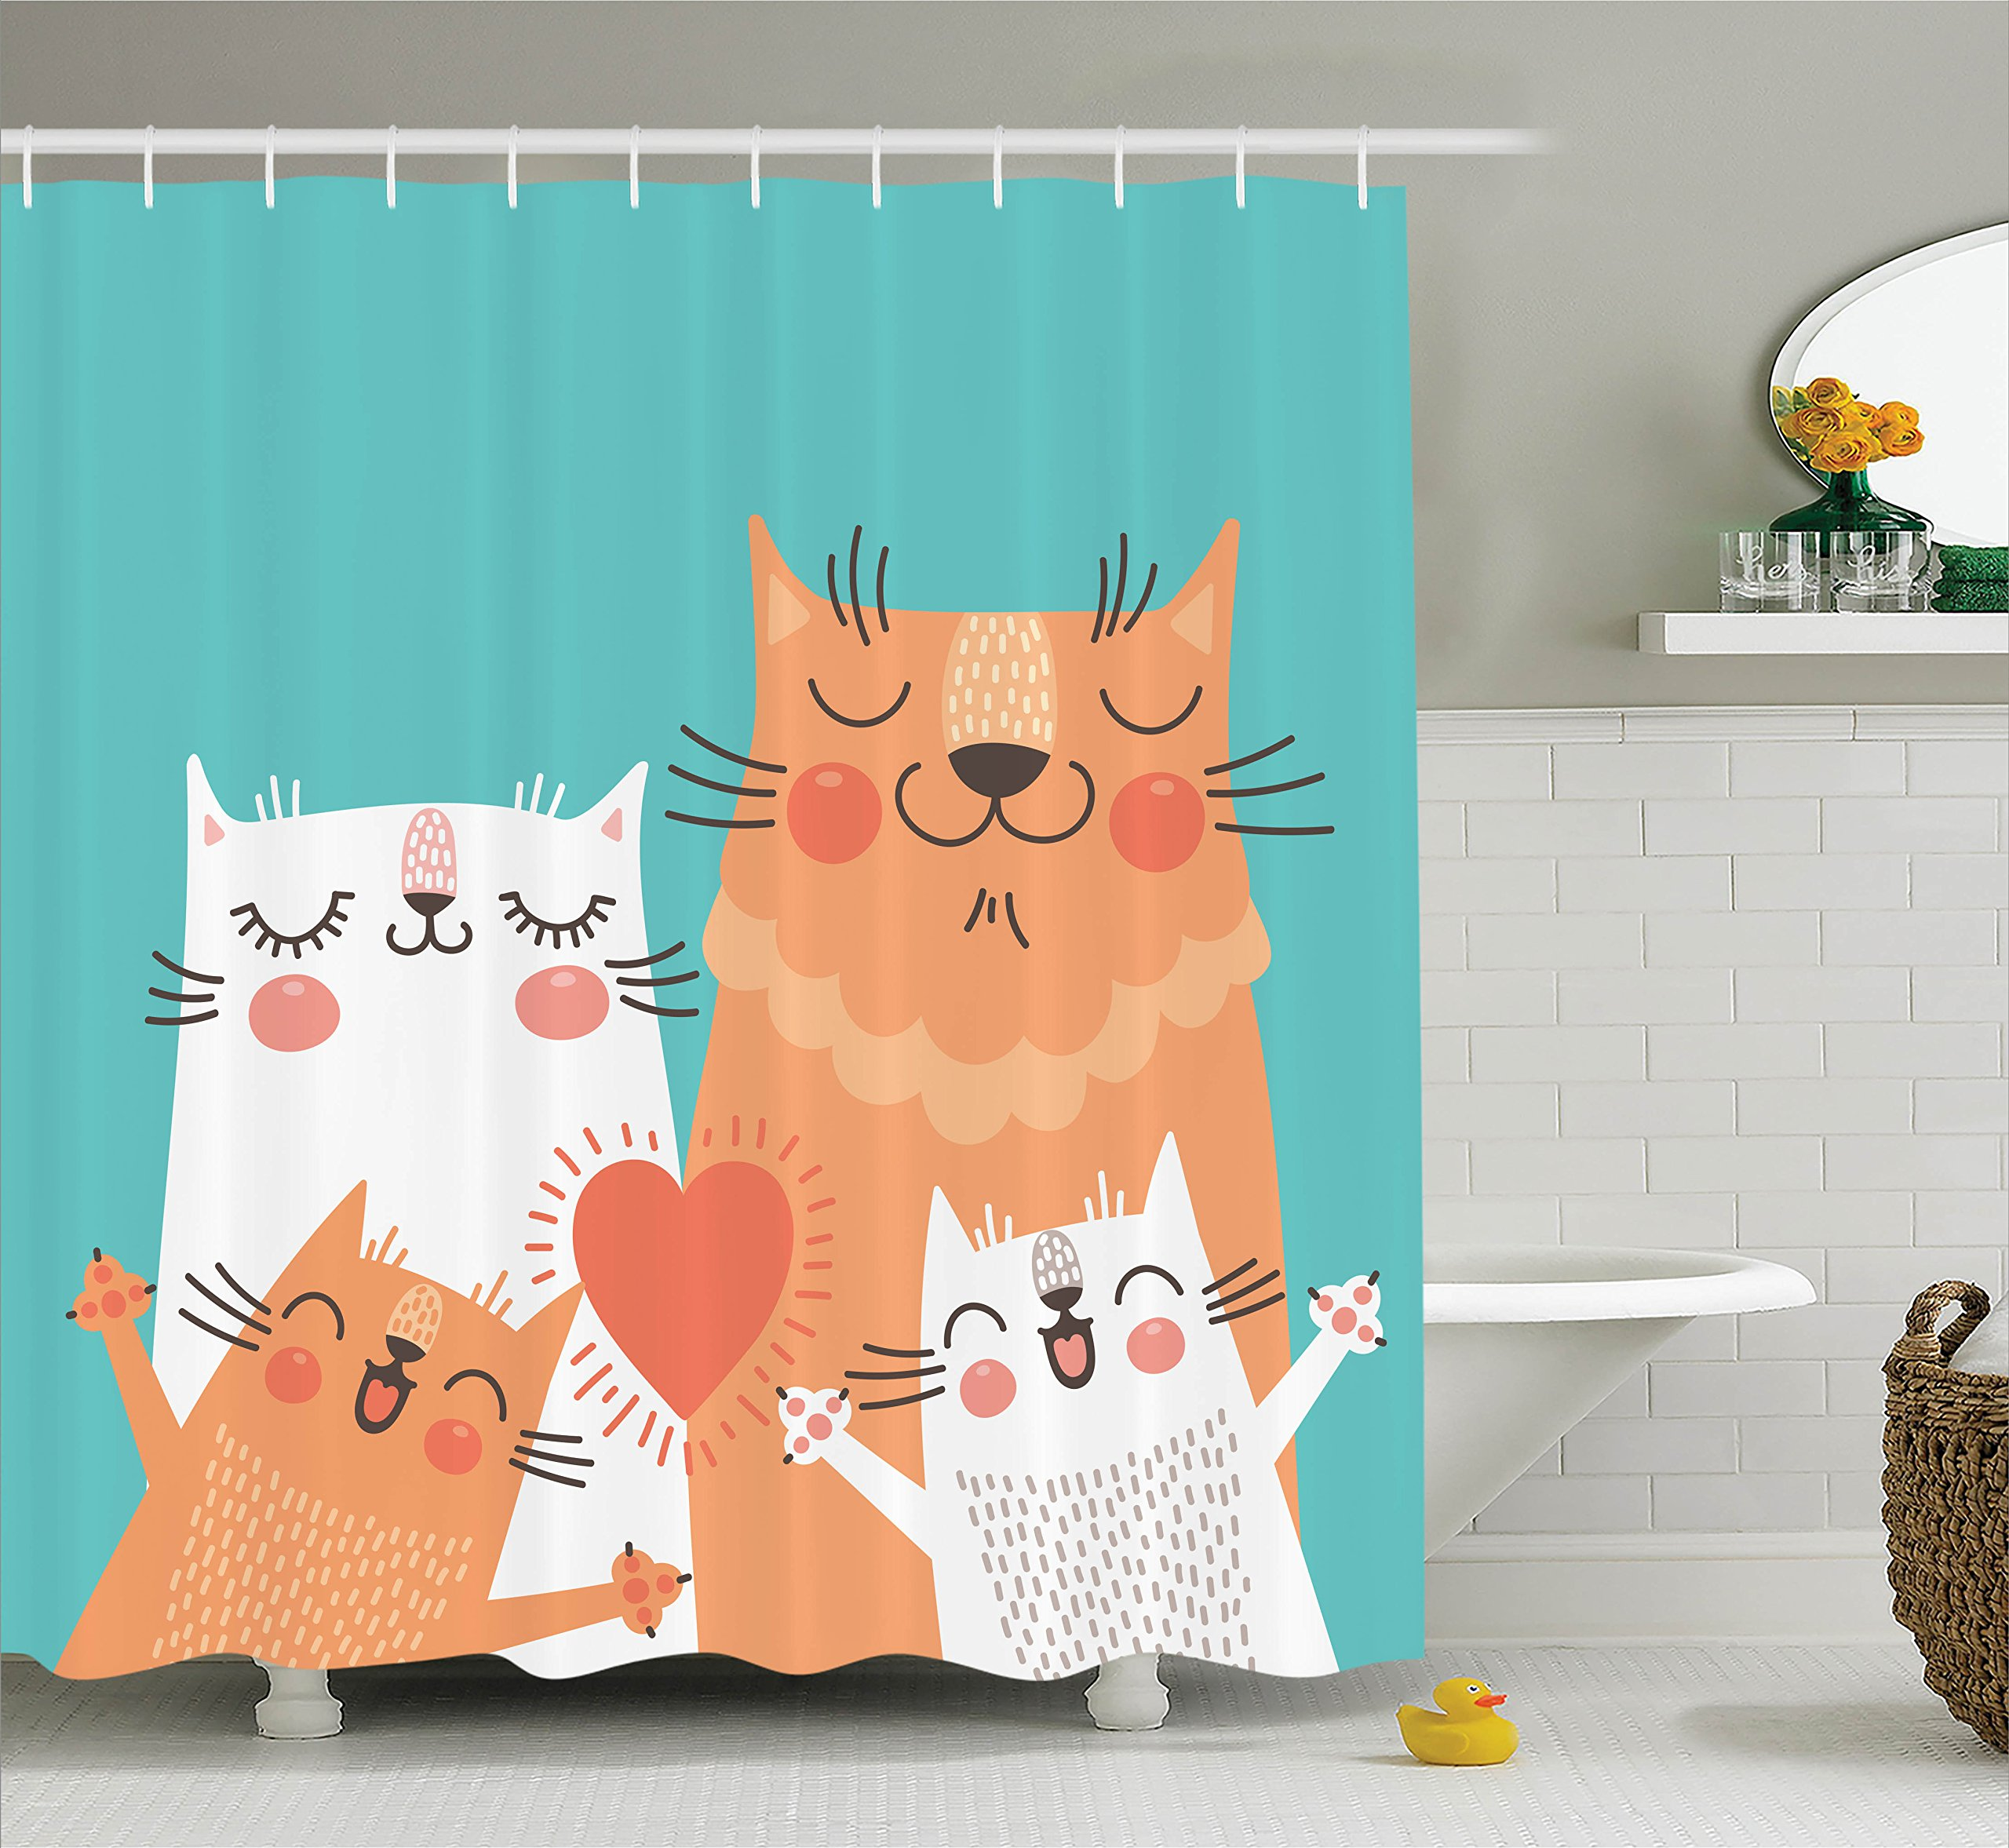 Ambesonne Funny Decor Shower Curtain Set, Cute Kitten Couple Sweet Happy Paws Loving Heart with Family Cats Poster Style Animal Art Theme, Bathroom Accessories, 75 inches Long, Multi